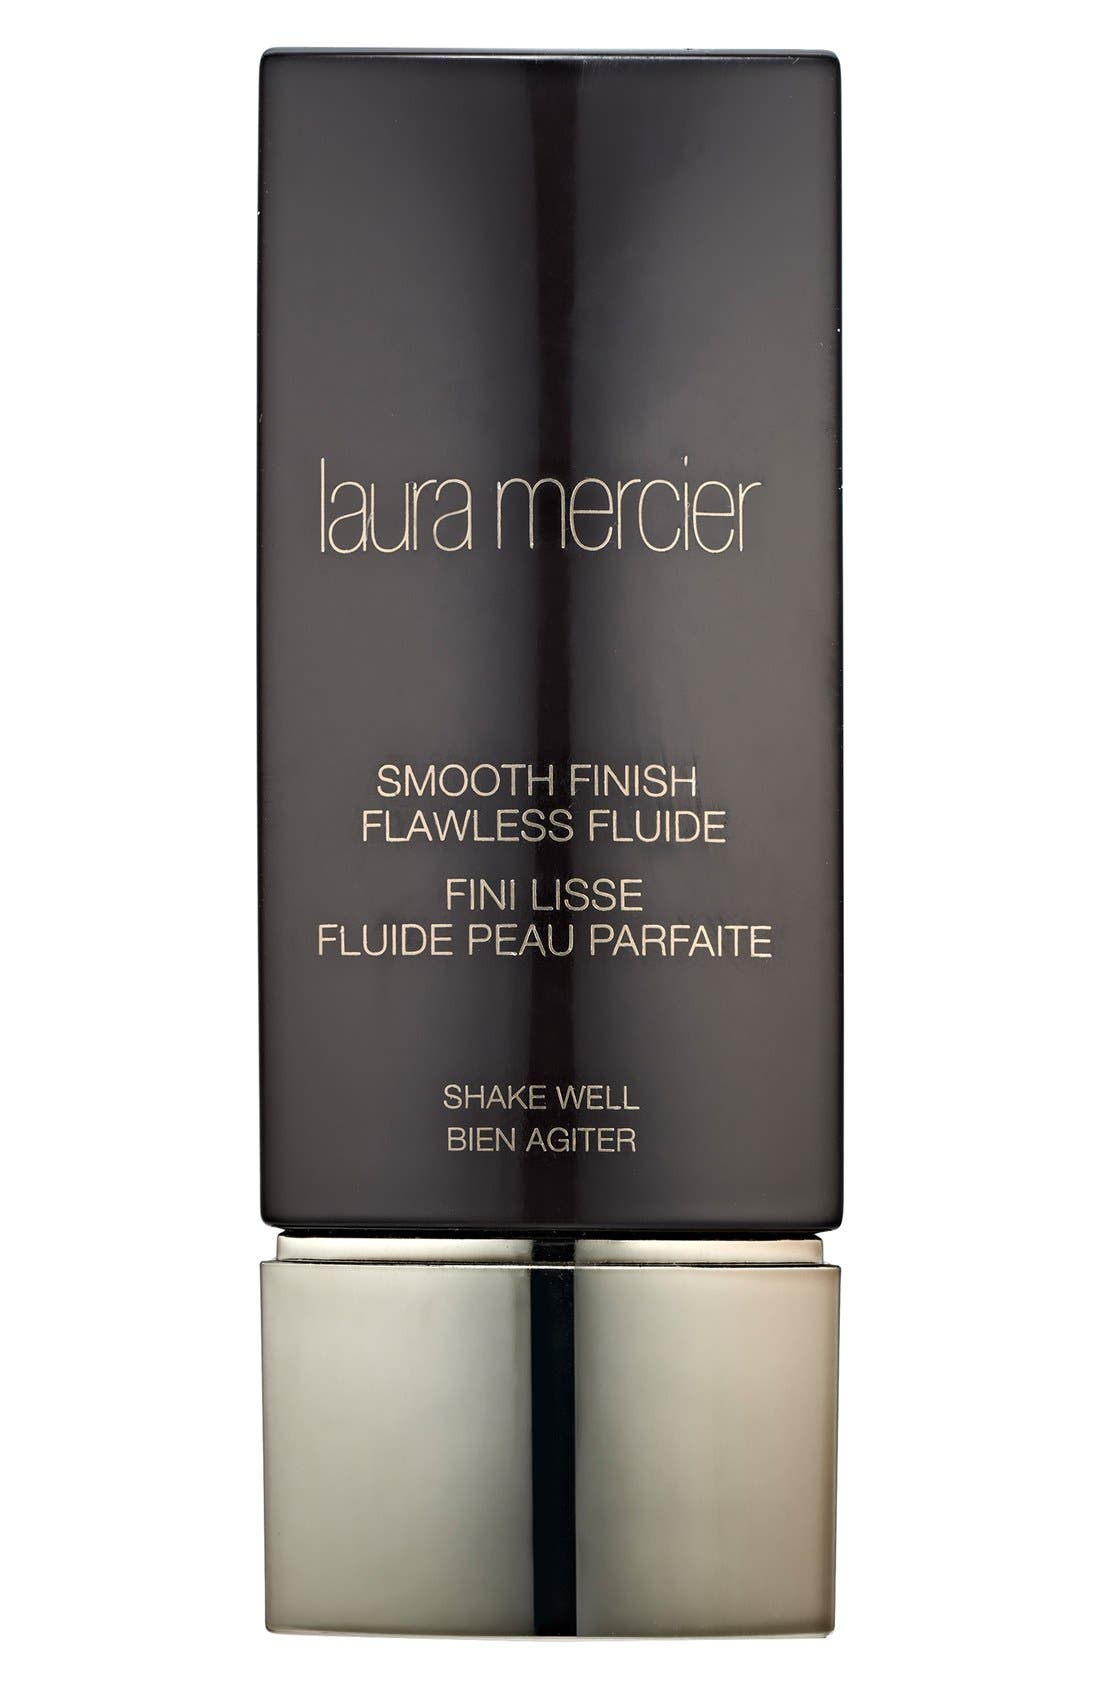 Laura Mercier Smooth Finish Flawless Fluide Foundation